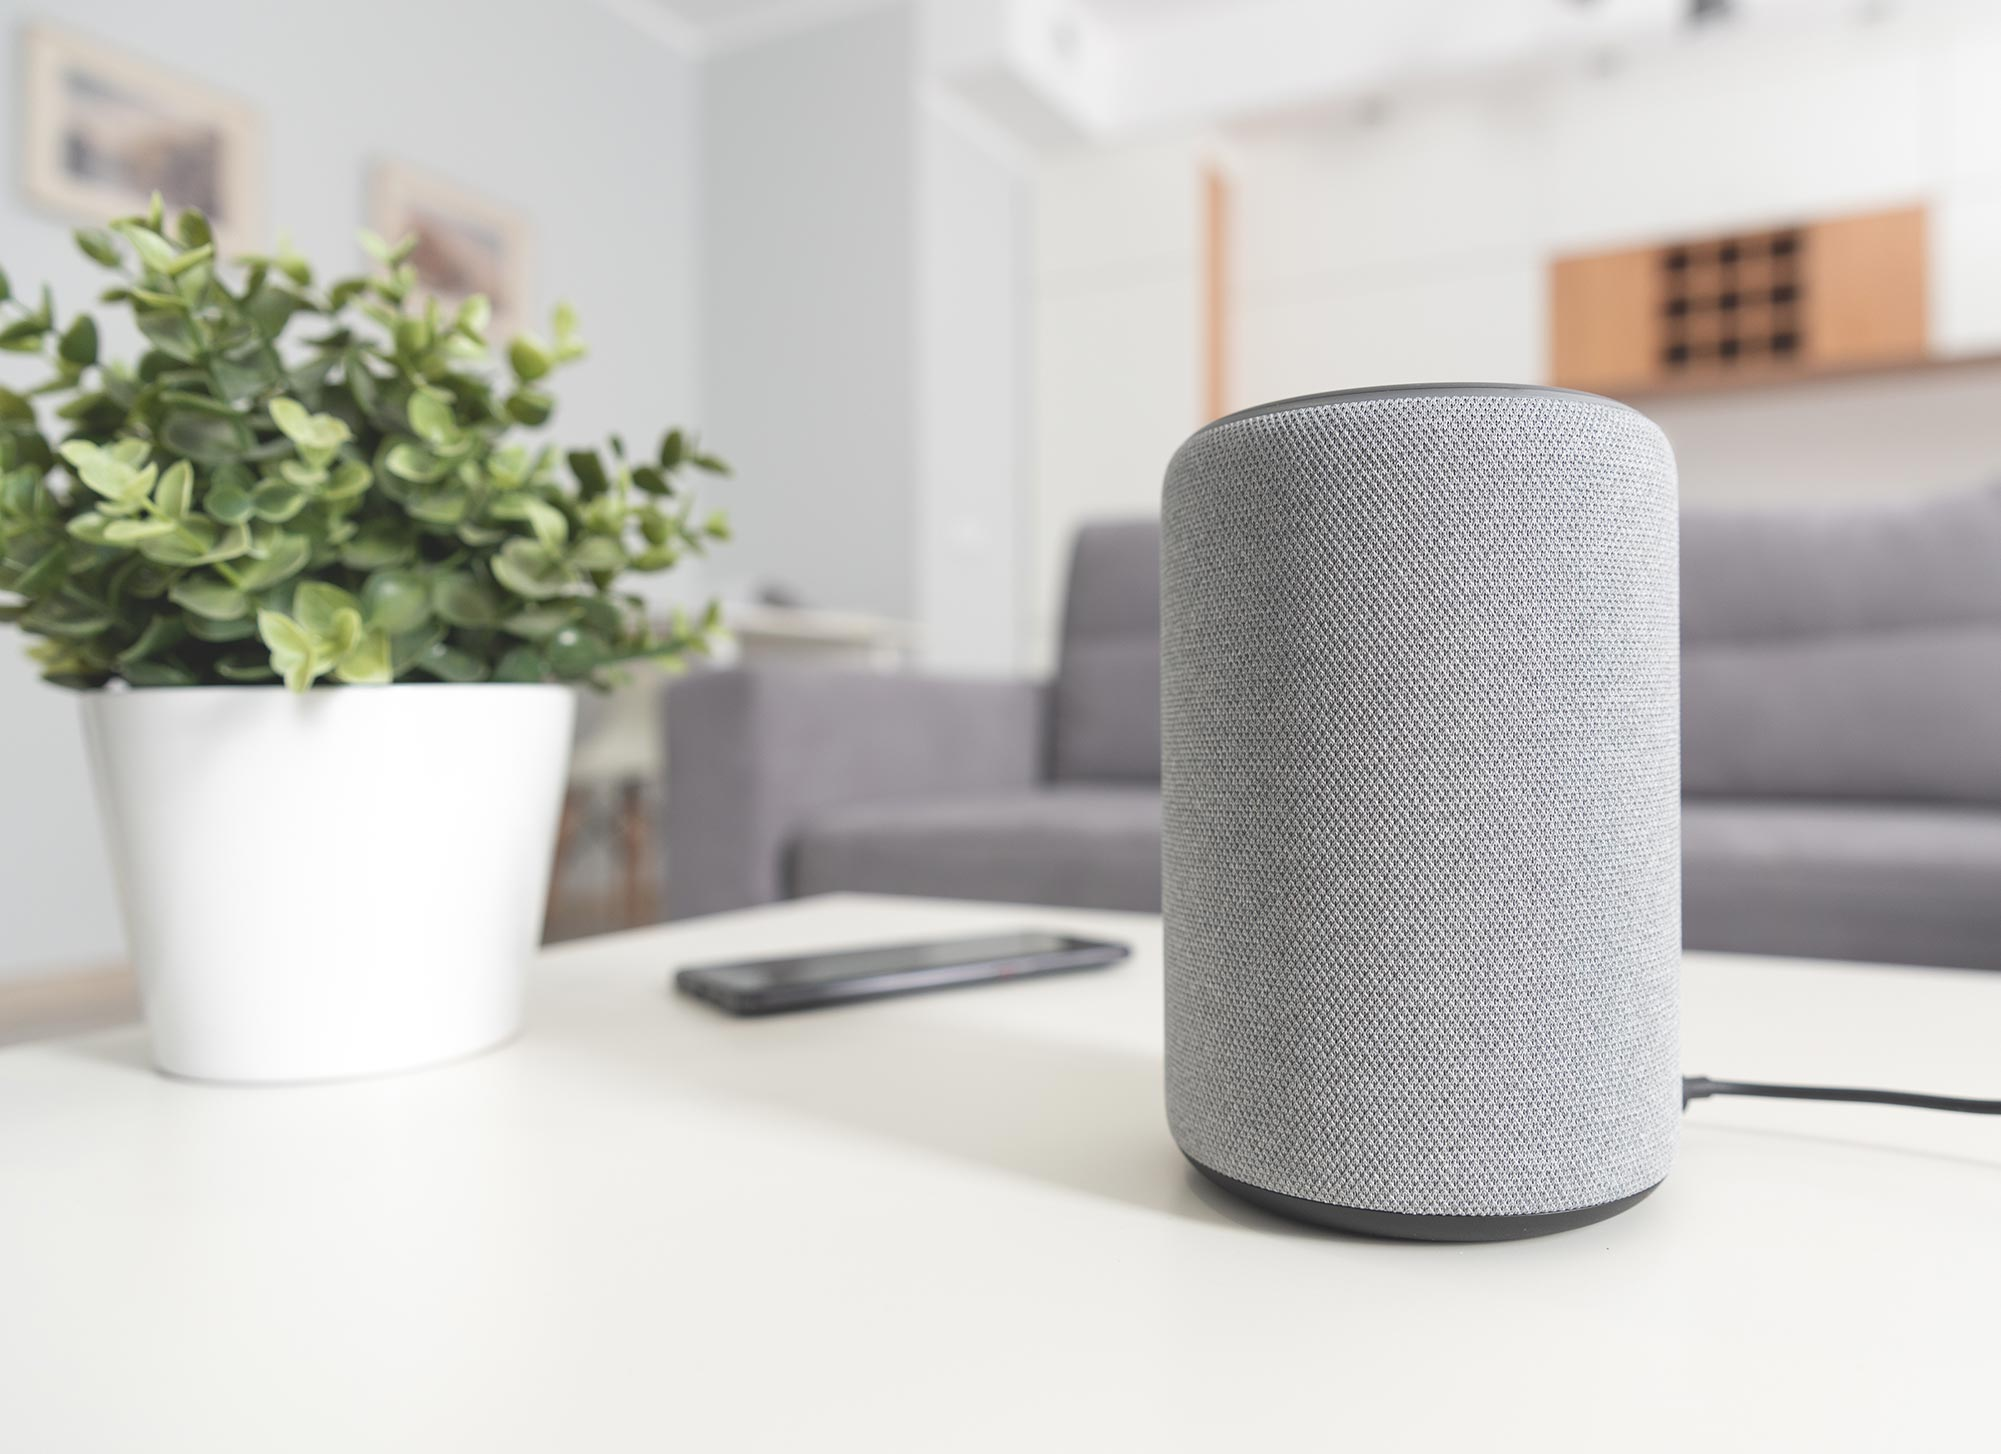 A speaker on a table of a home with a couch blurred in the background